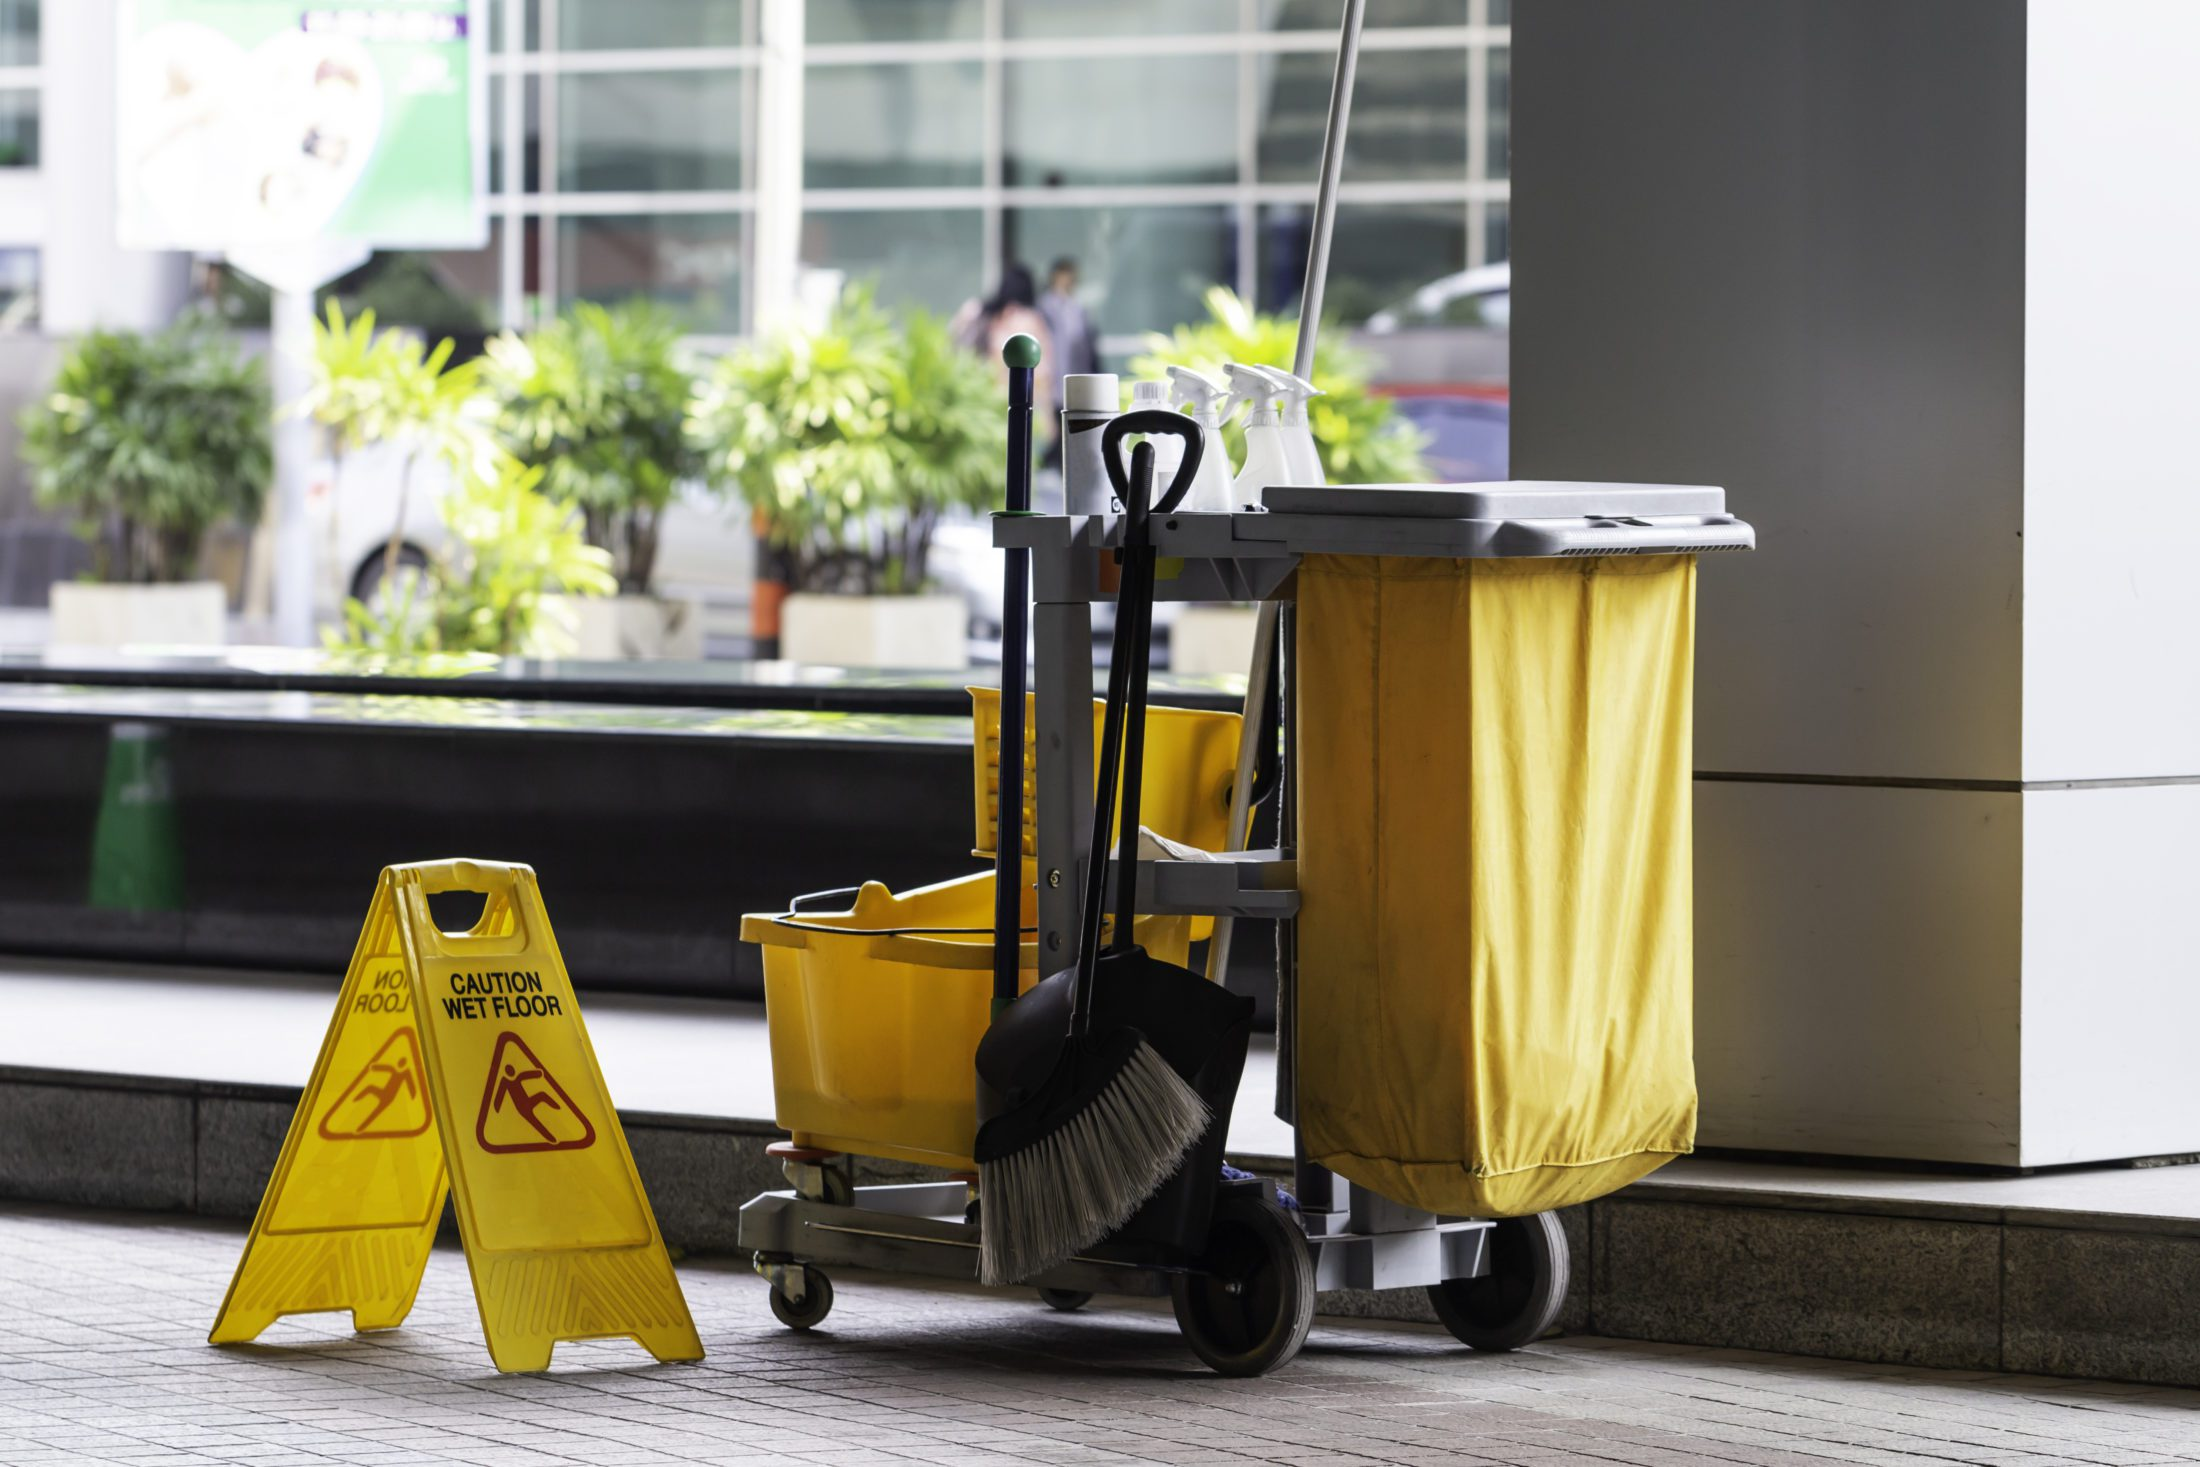 Janitorial and mop bucket on cleaning in process.